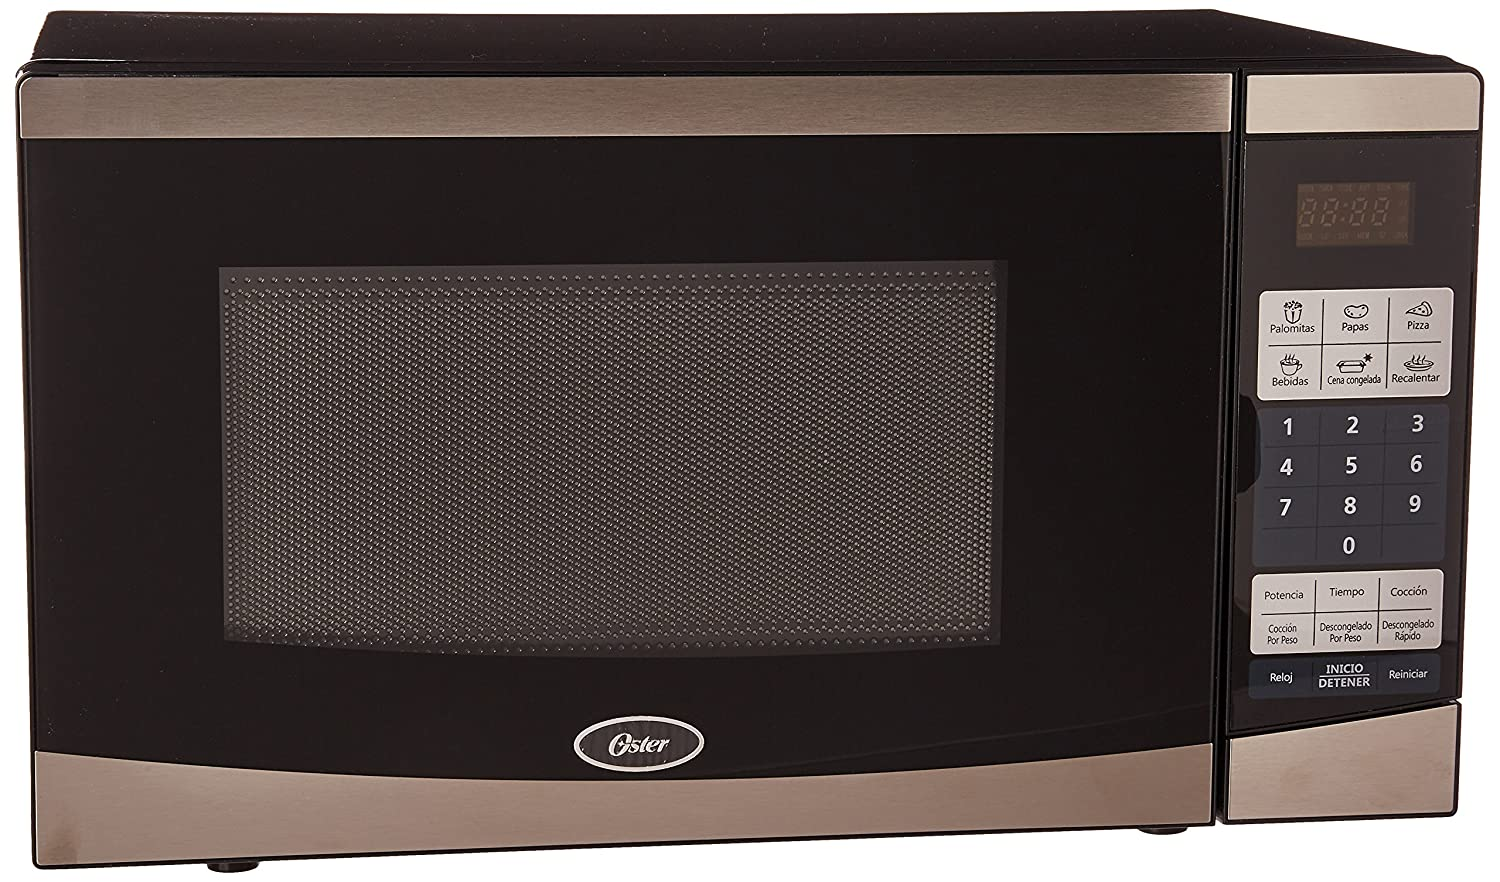 Oster 0.7 Cu. Ft. Compact Microwave - Stainless-steel/black Ogyu701 OGYU702